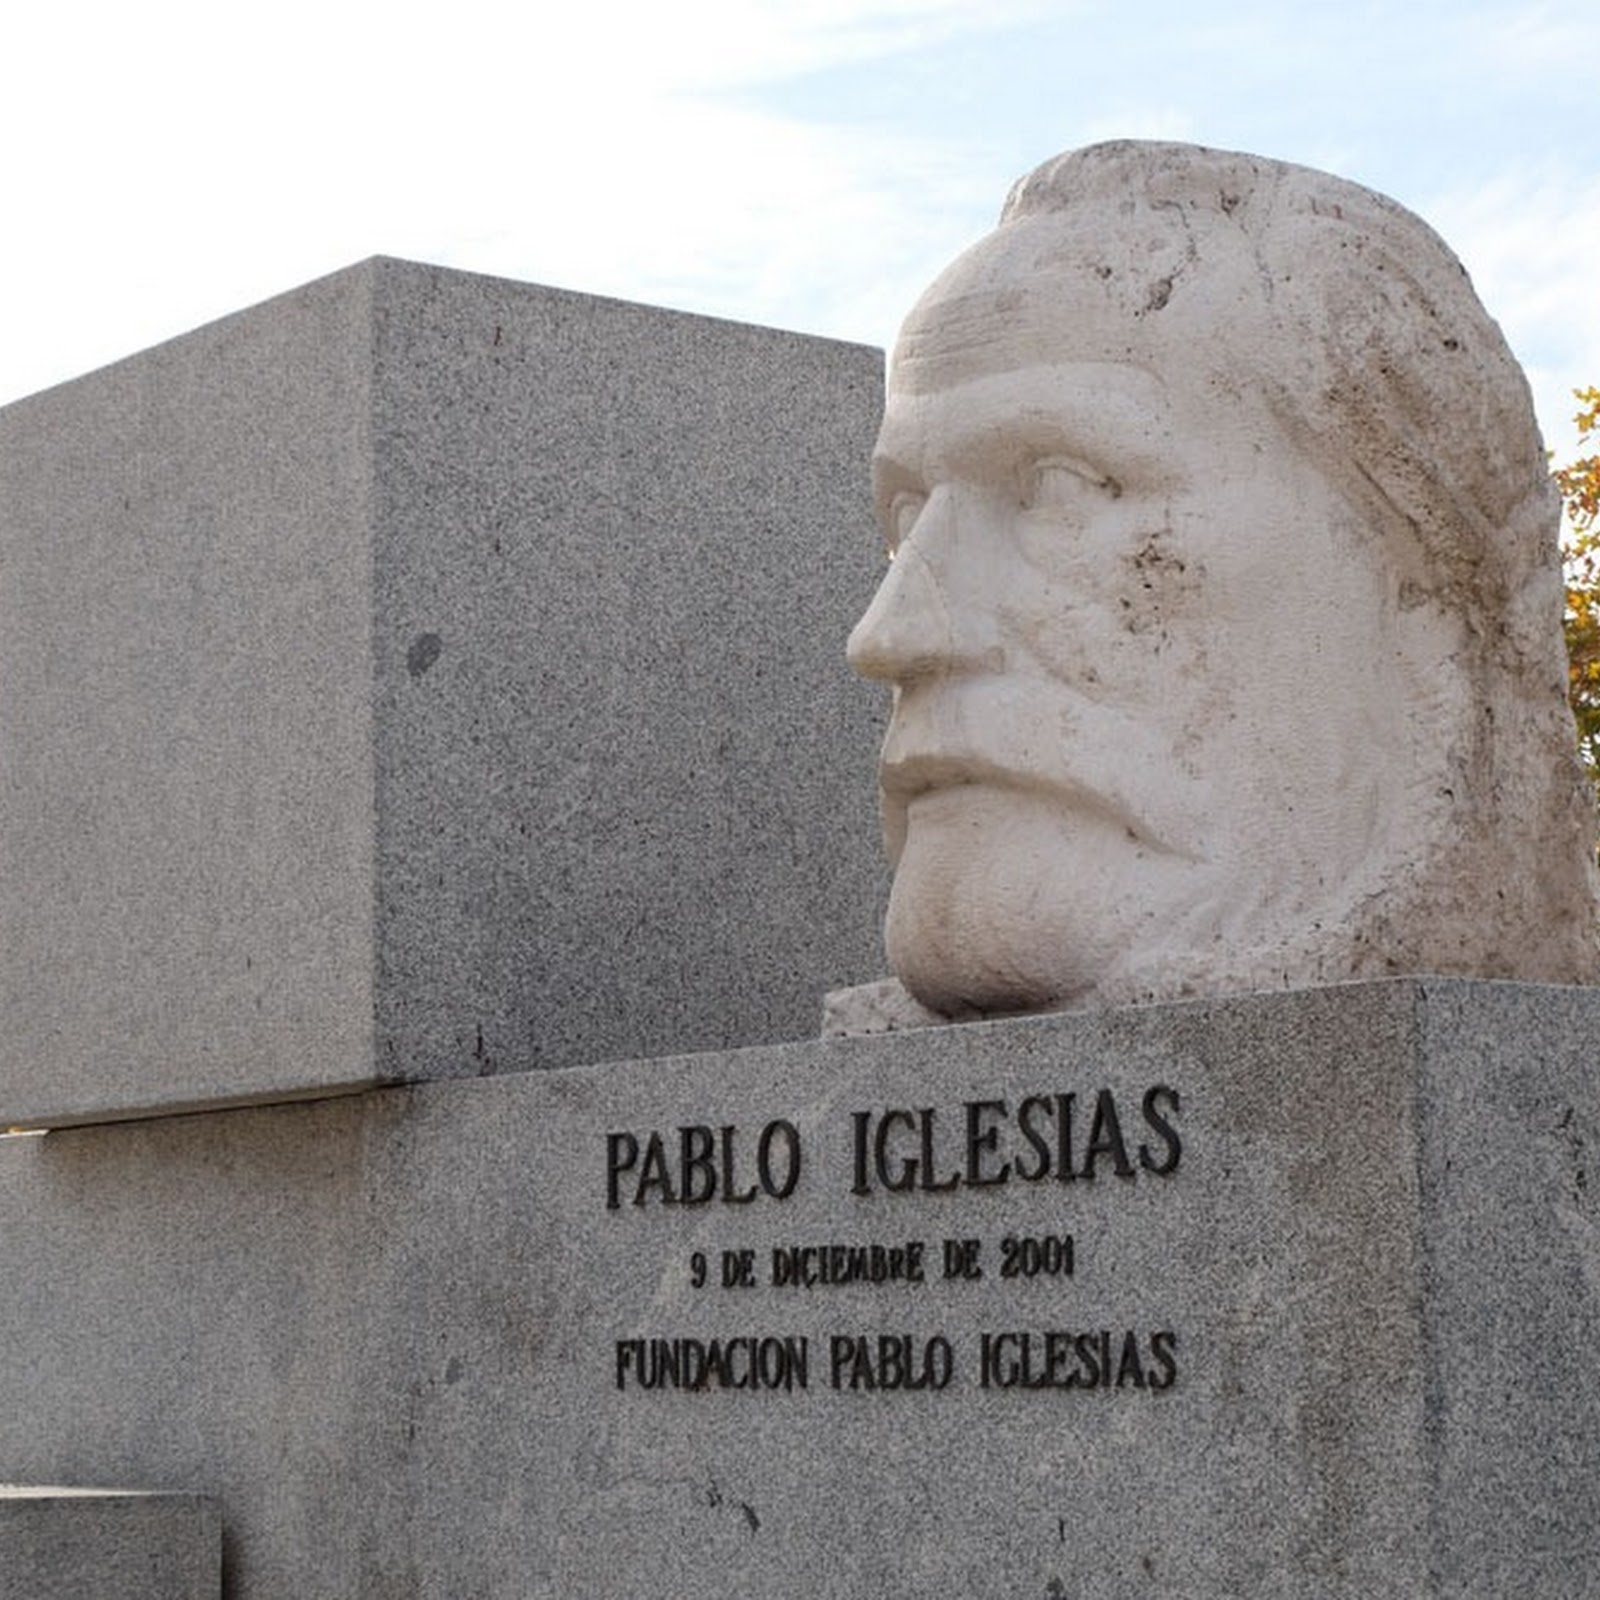 The Indestructible Bust of Pablo Iglesias